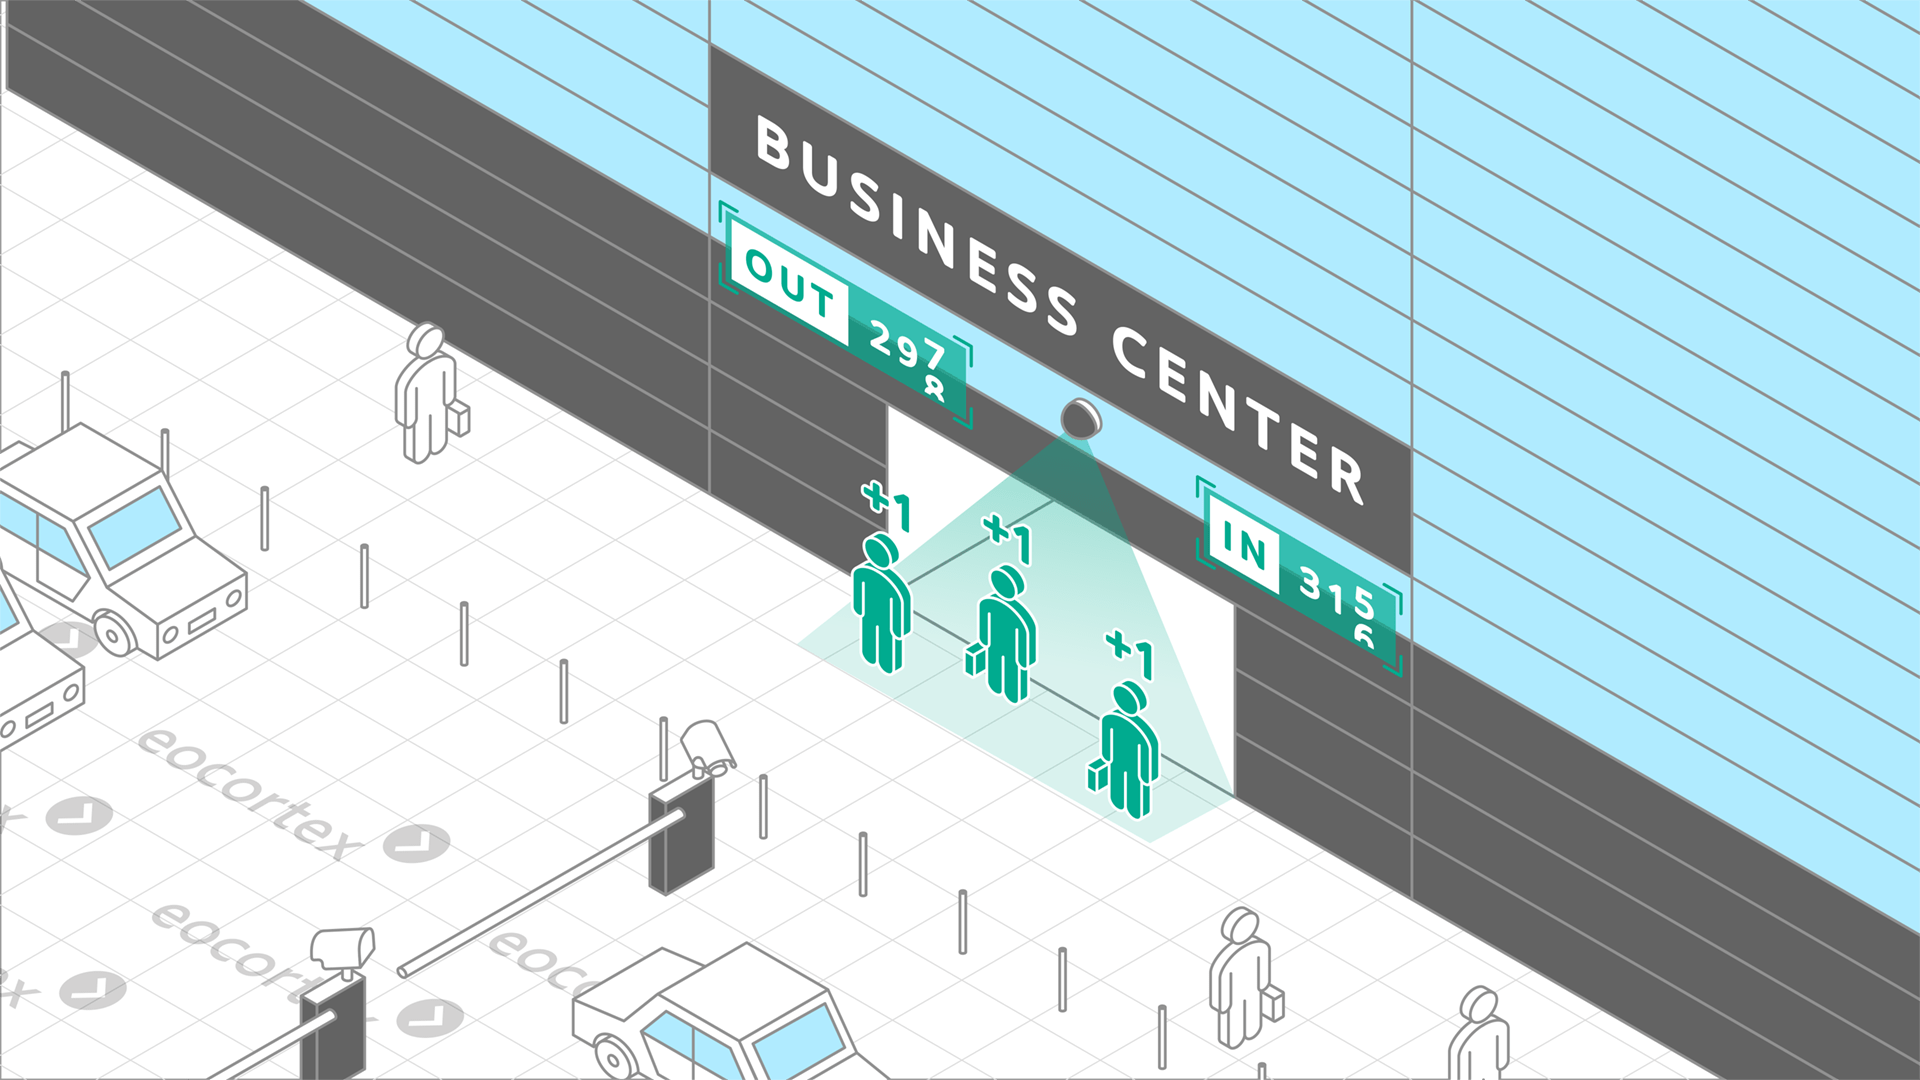 Showcasing of People Counting for business centers & offices. CCTV surveillance system operates on the basis of the Eocortex Video Management Software.